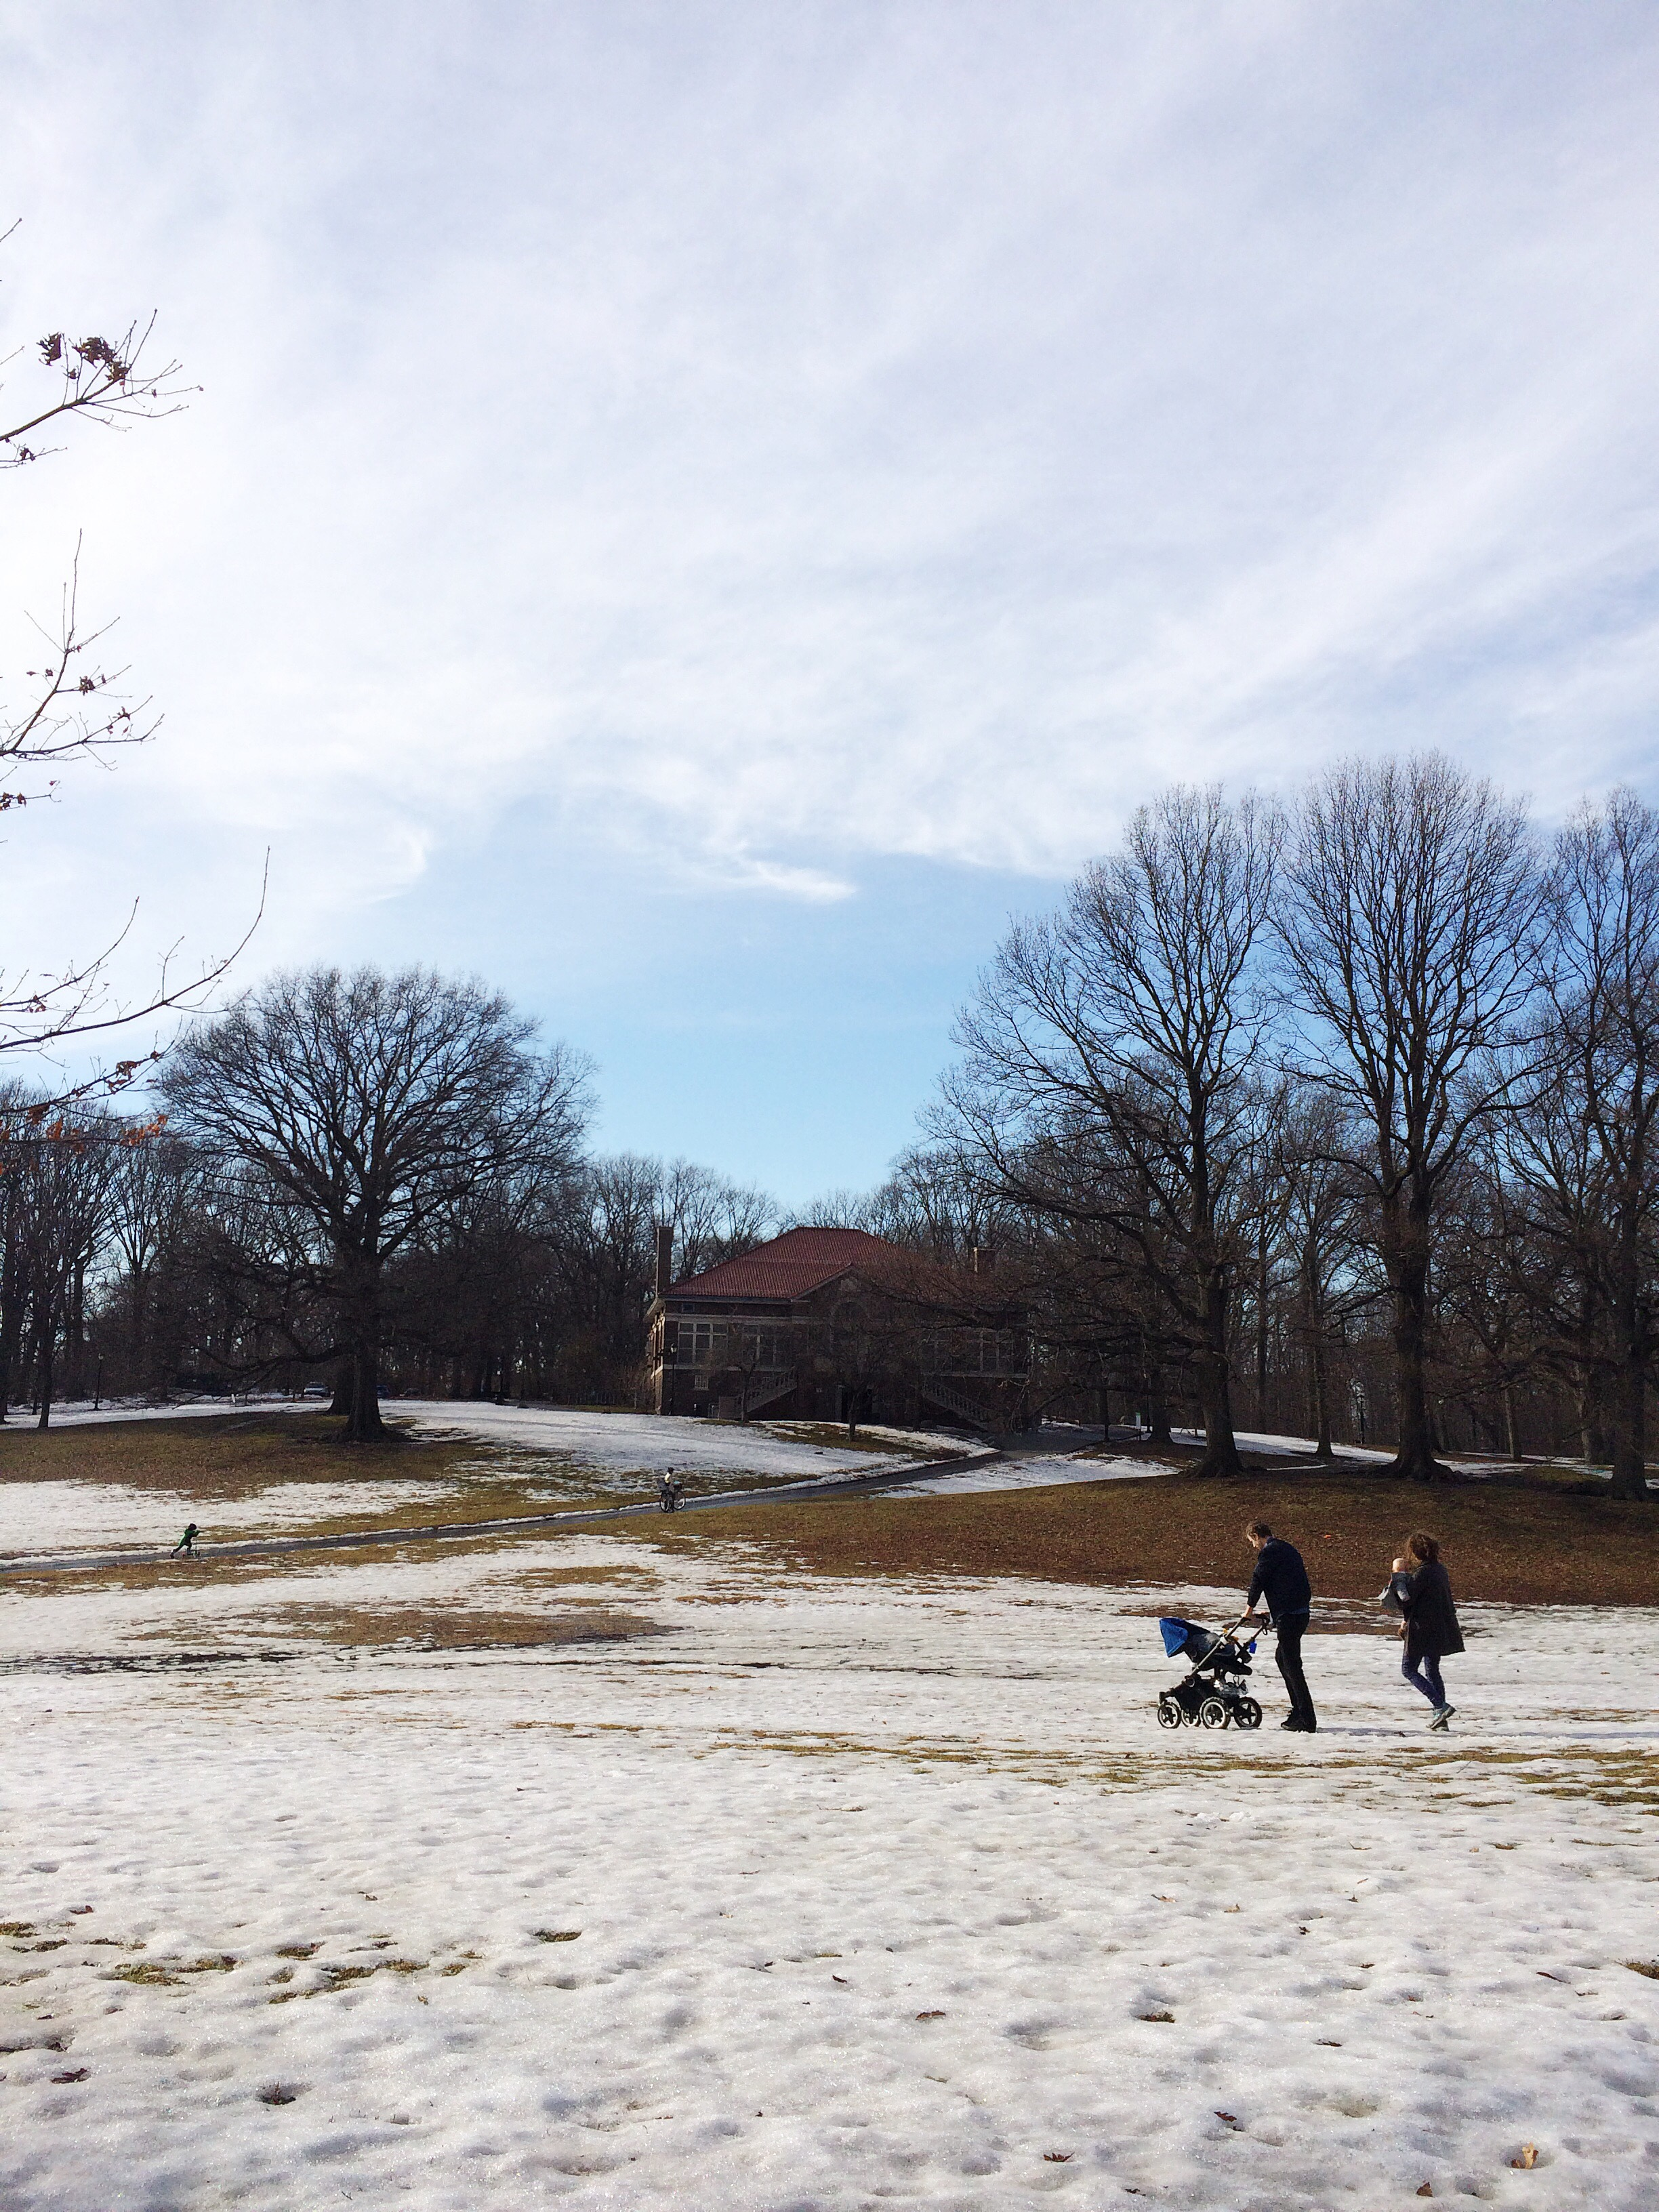 A scene from Prospect Park last week as the snow finally starts to thaw out from the grounds.